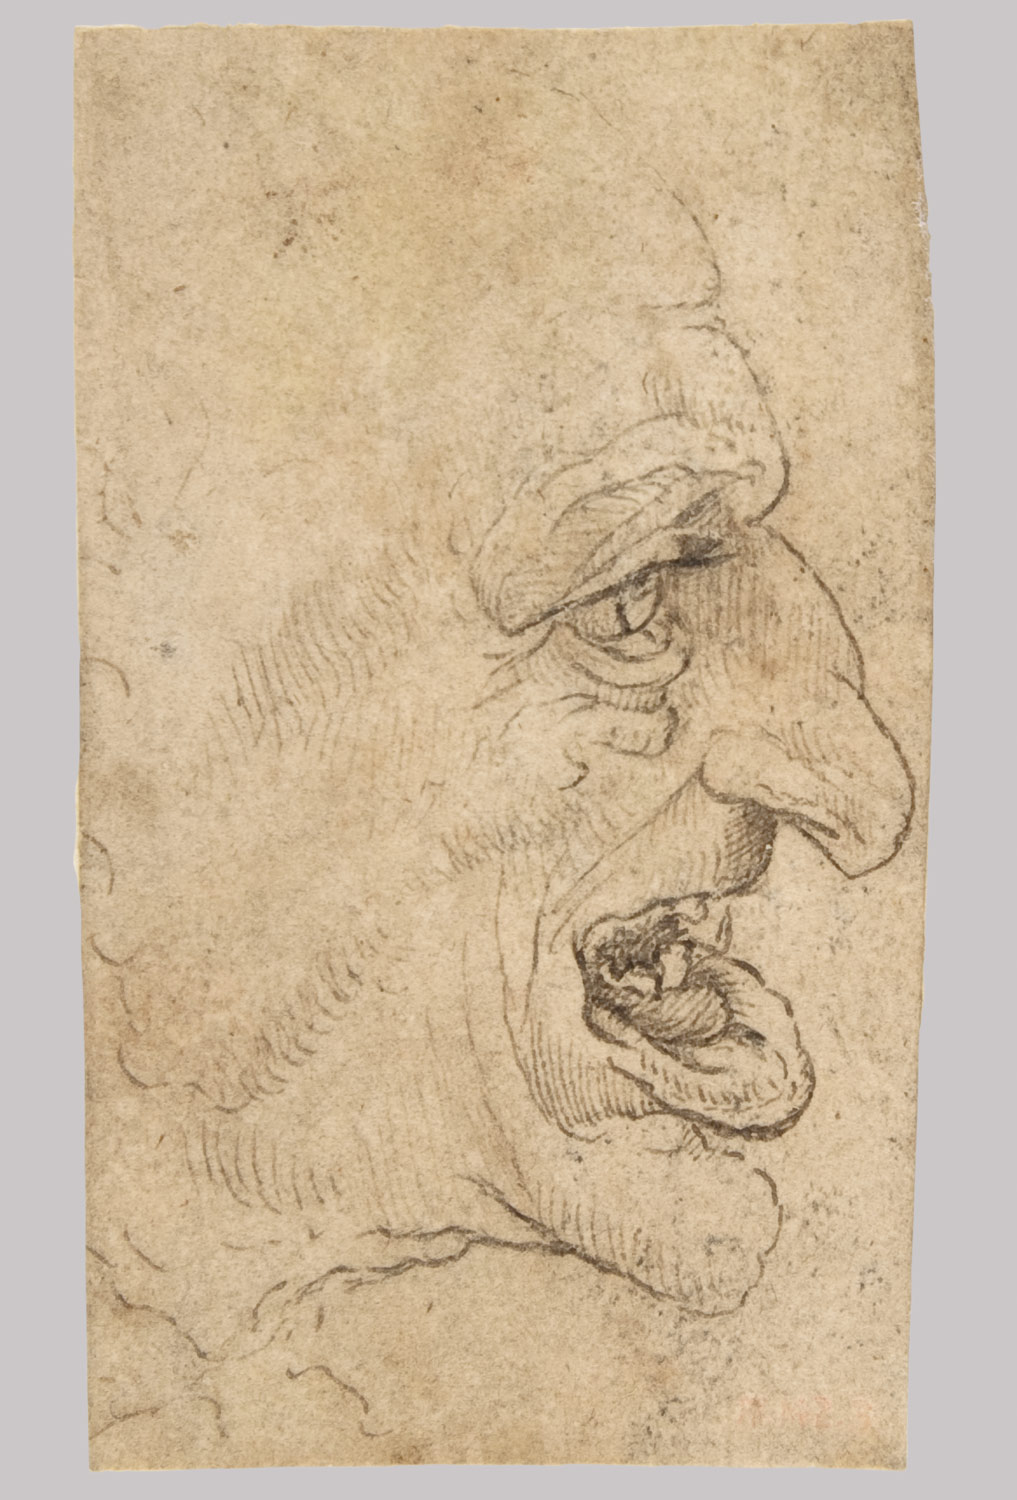 The Head of a Grotesque Man in Profile Facing Right